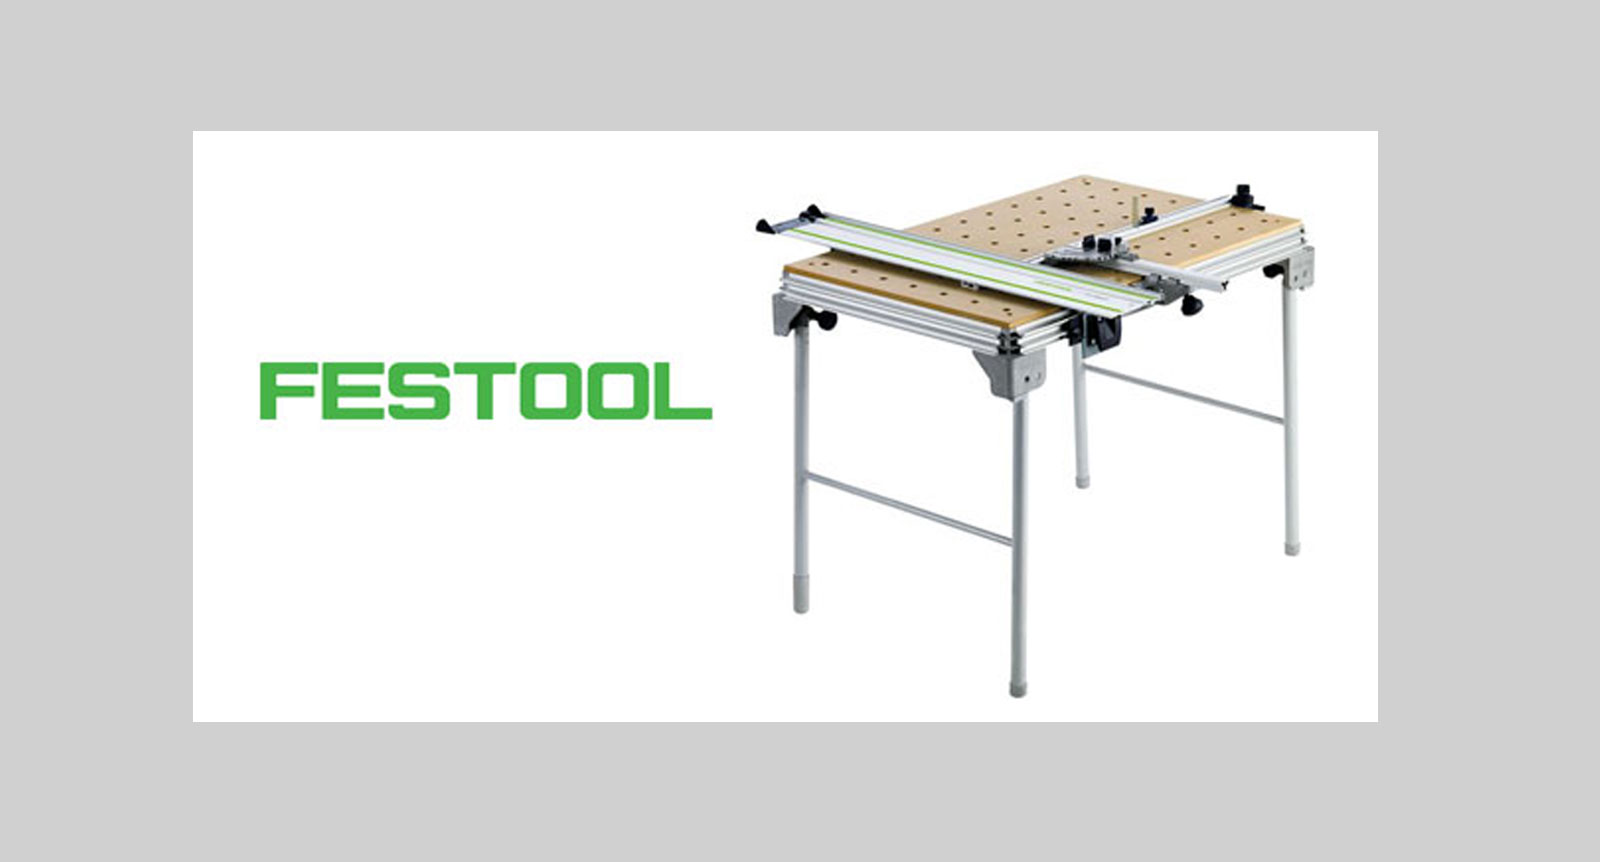 Product Spotlight: Festool